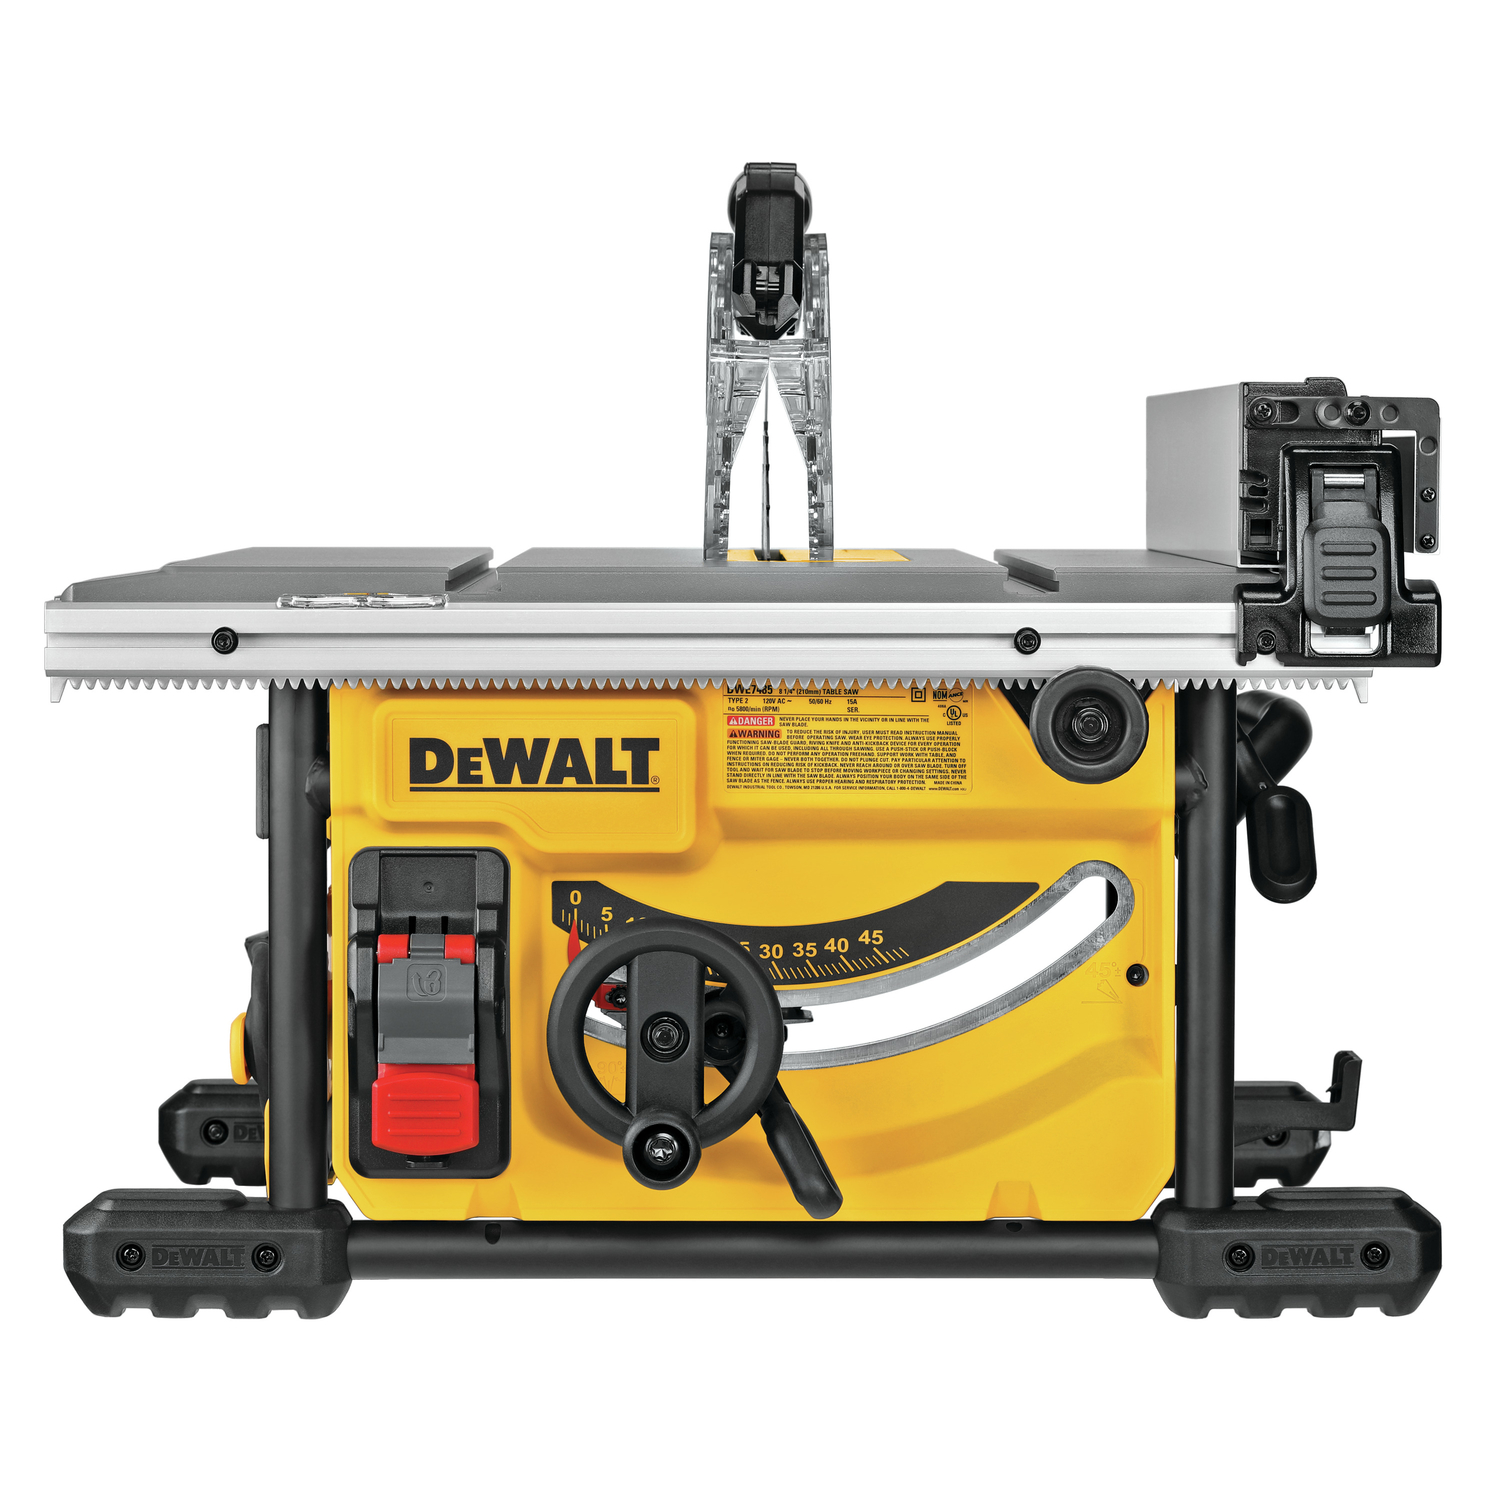 DeWalt Corded Compact Table Saw 15 amps -  DWE7485